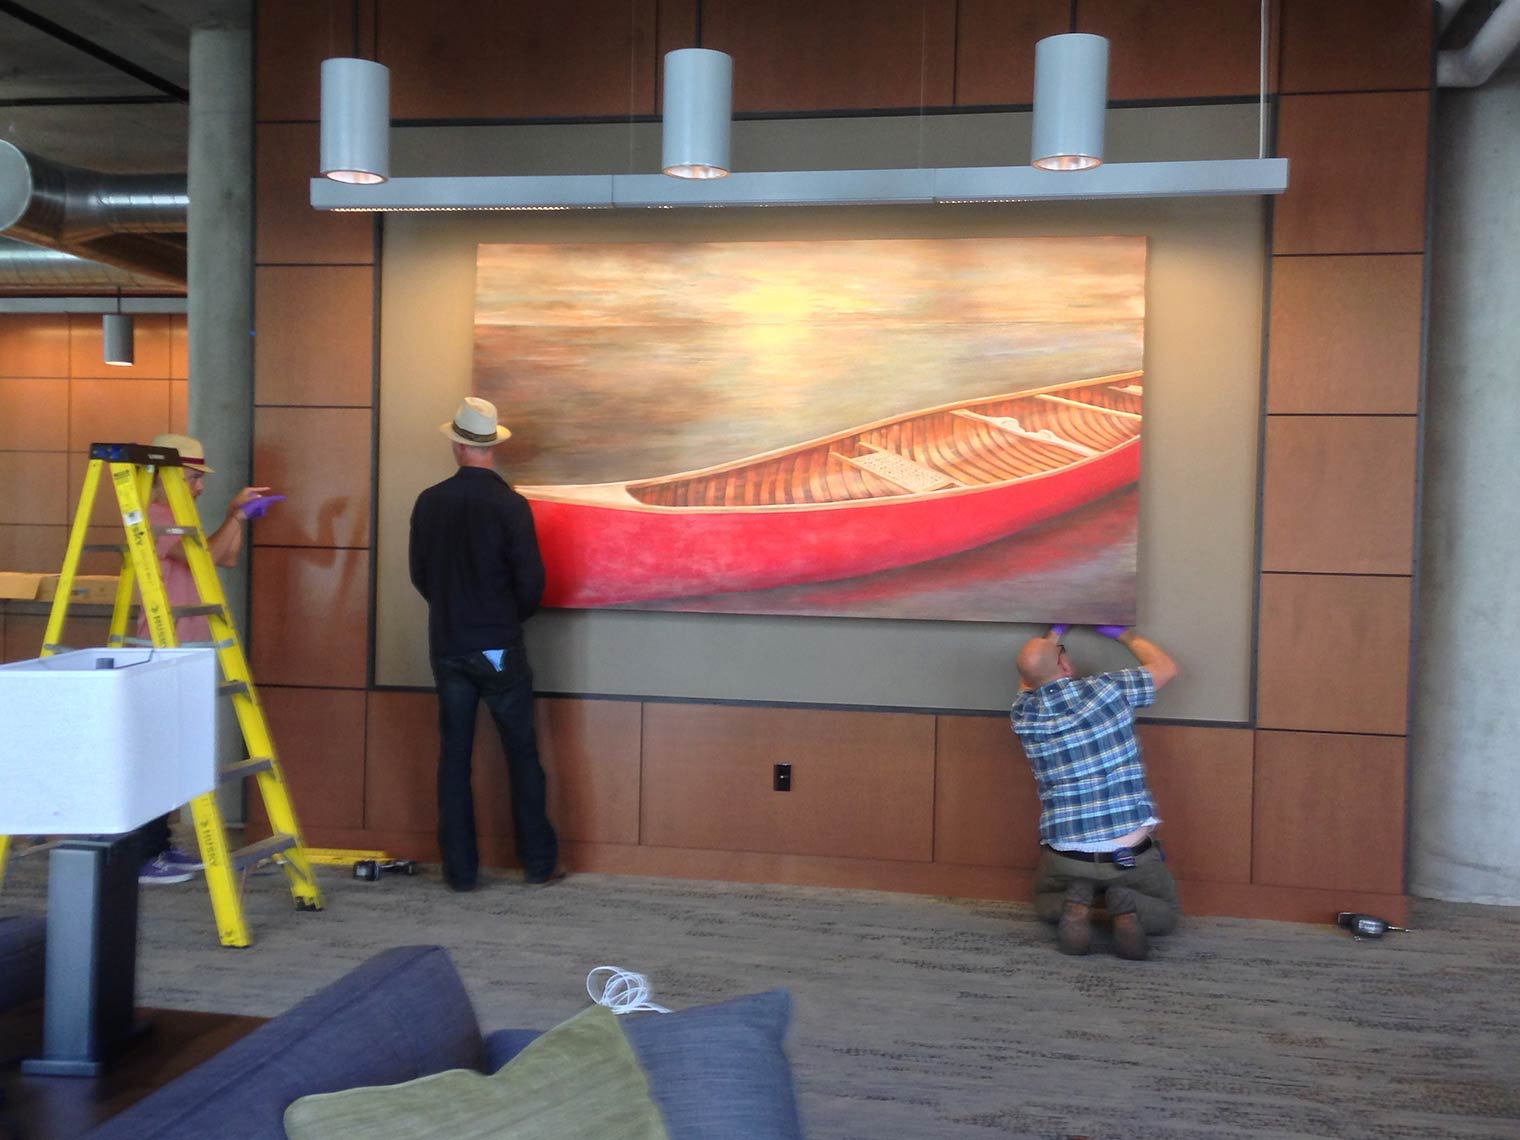 Installation-Waltons-Journey-2015-Waltons-Loft-Belltown-Seattle-WA-60x108-